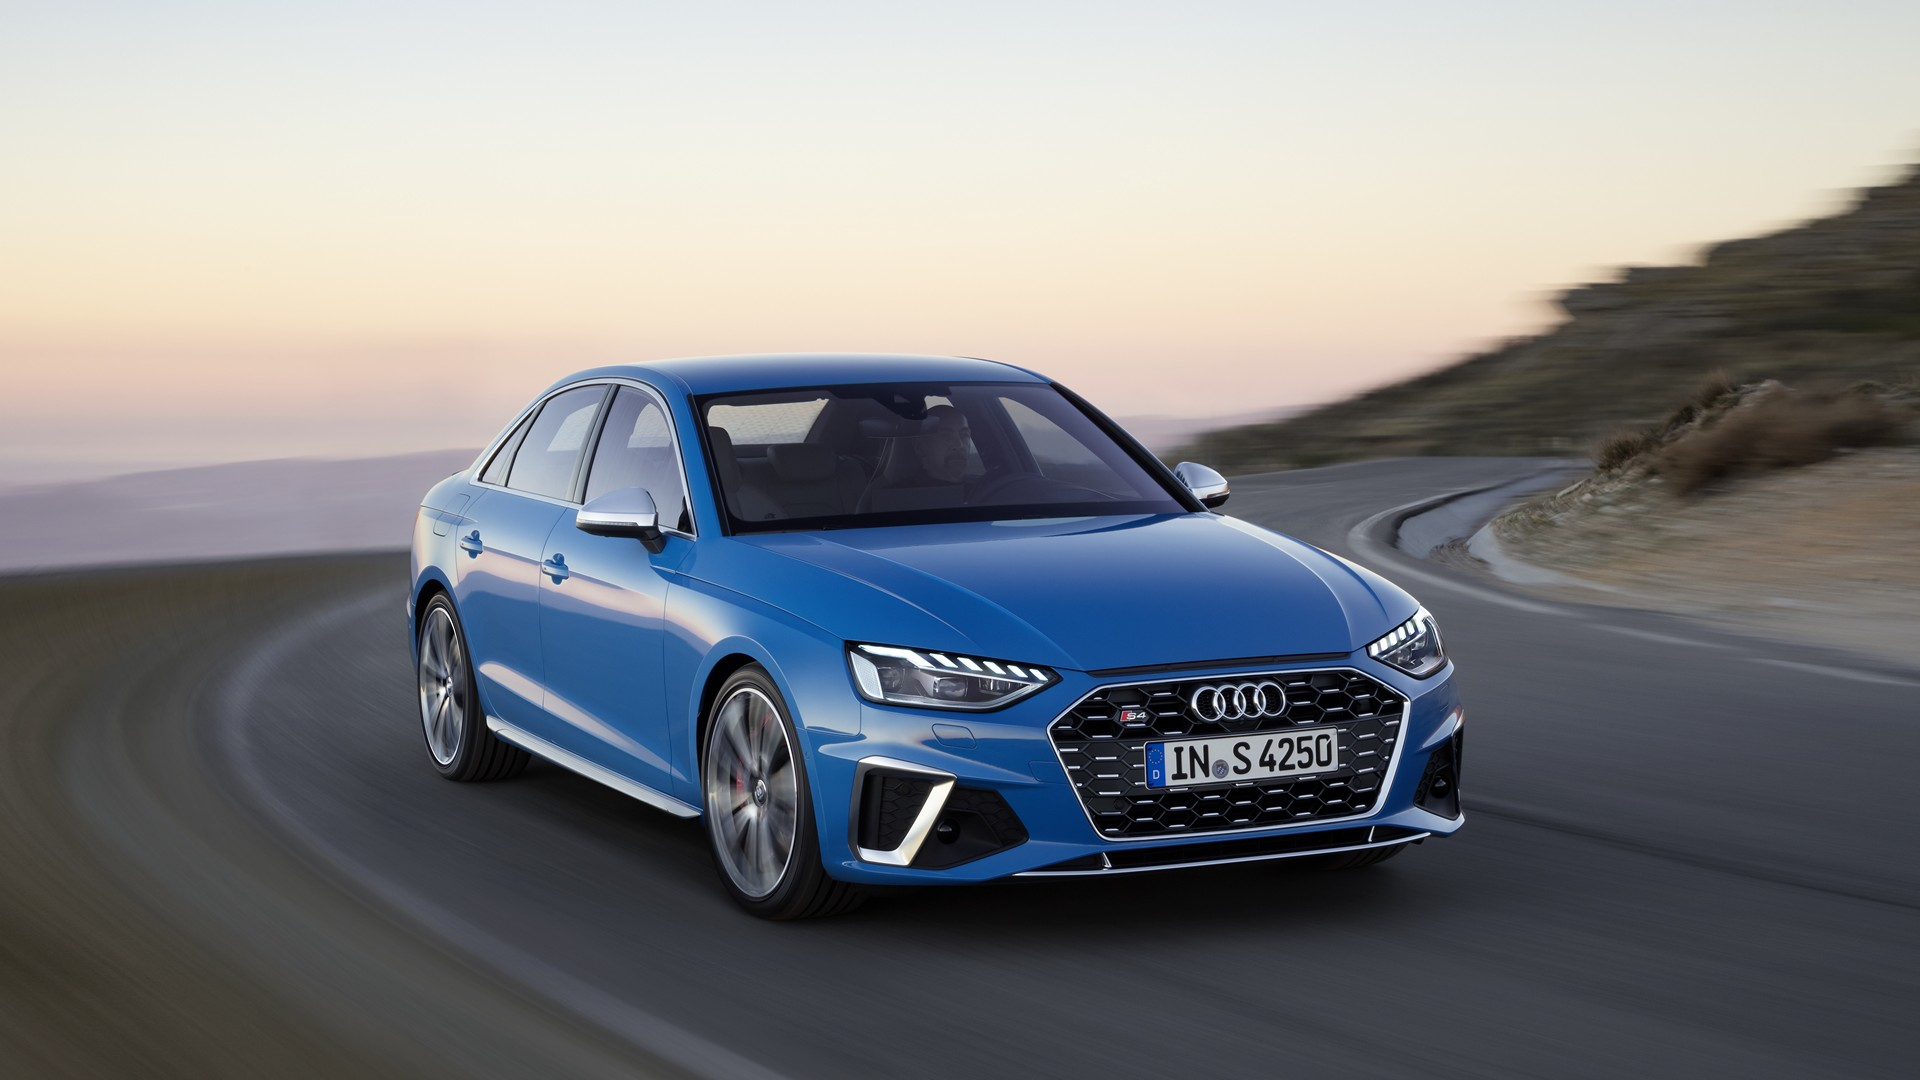 Audi S4 And S4 Avant Debut With New Look Tdi Engines